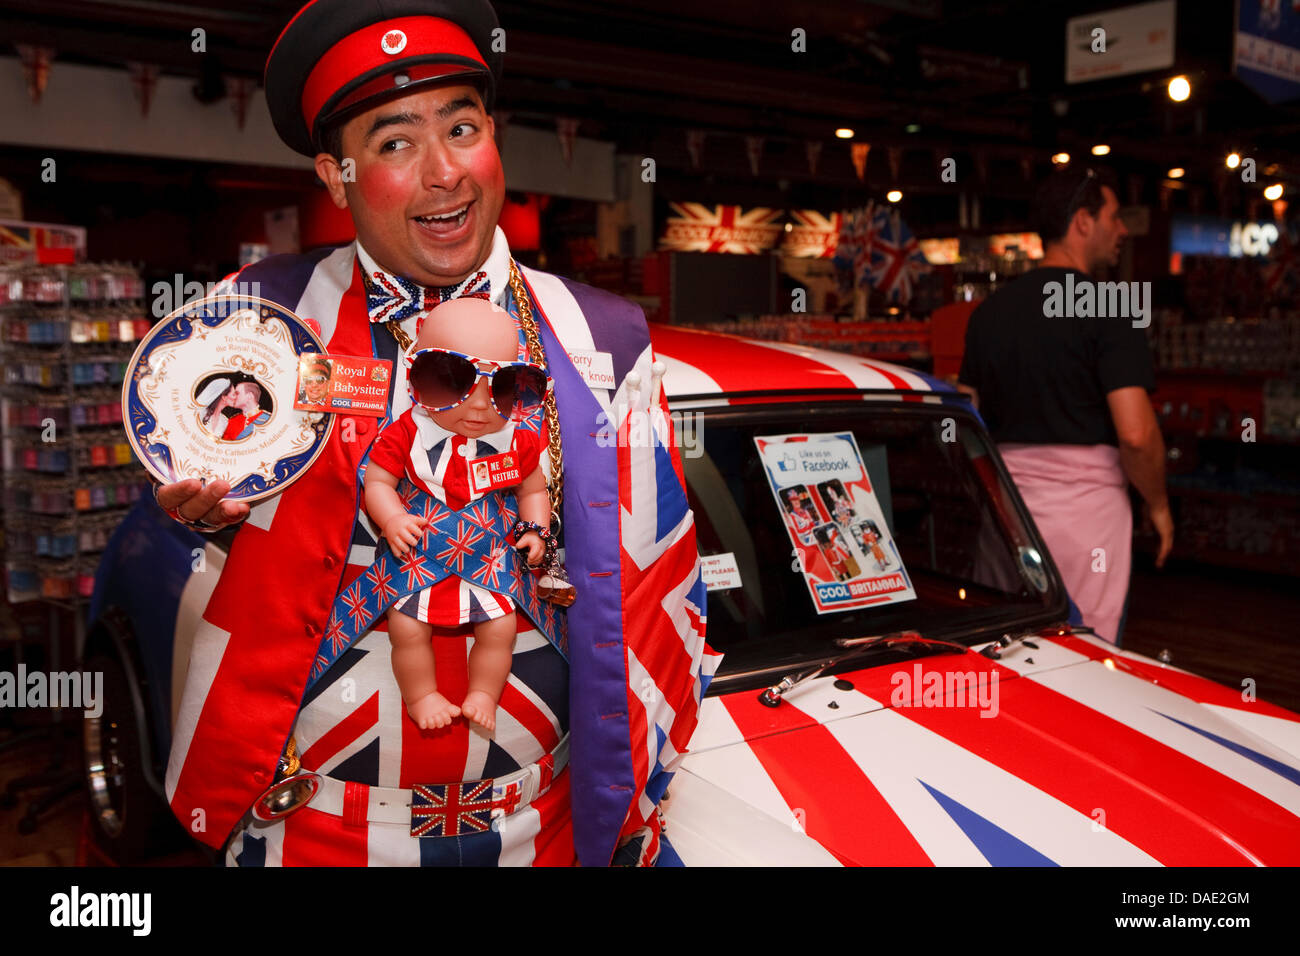 London, UK, A member of staff in Union Jack clothing complete with a Royal baby doll inside the Cool Brittania Souvenir - Stock Image